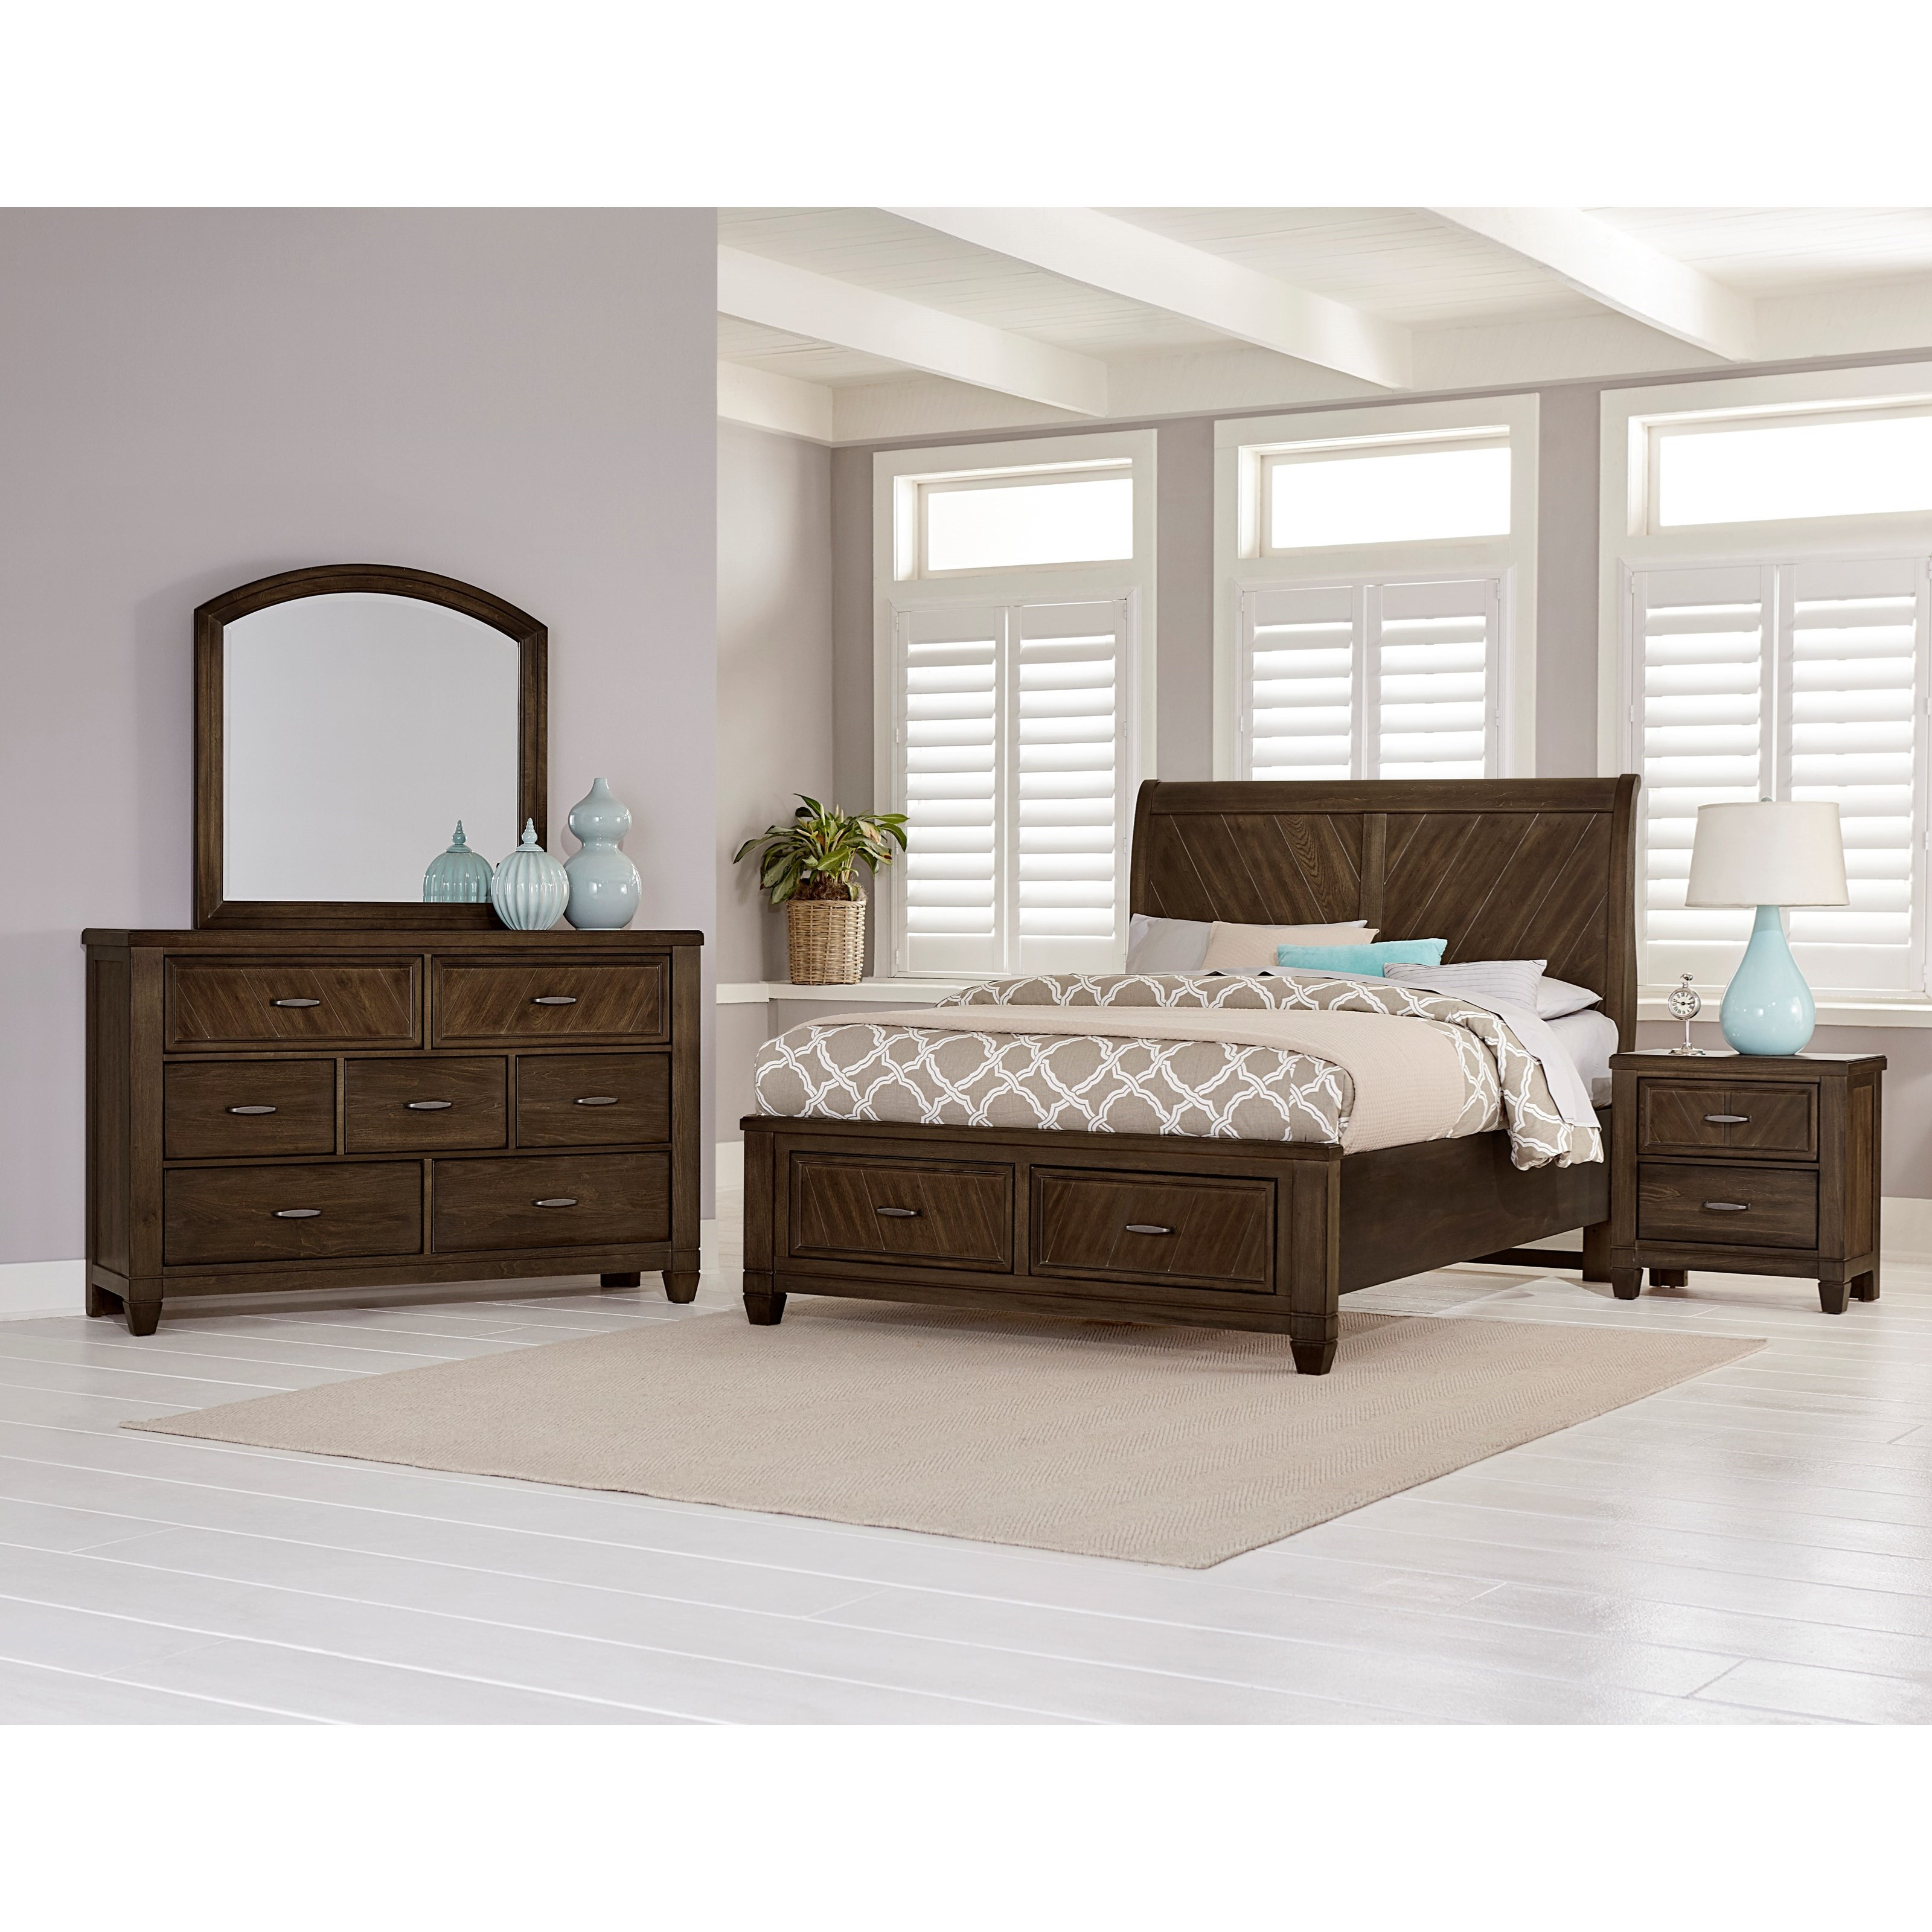 Vaughan bassett rustic cottage king bedroom group value for Bedroom furniture groups